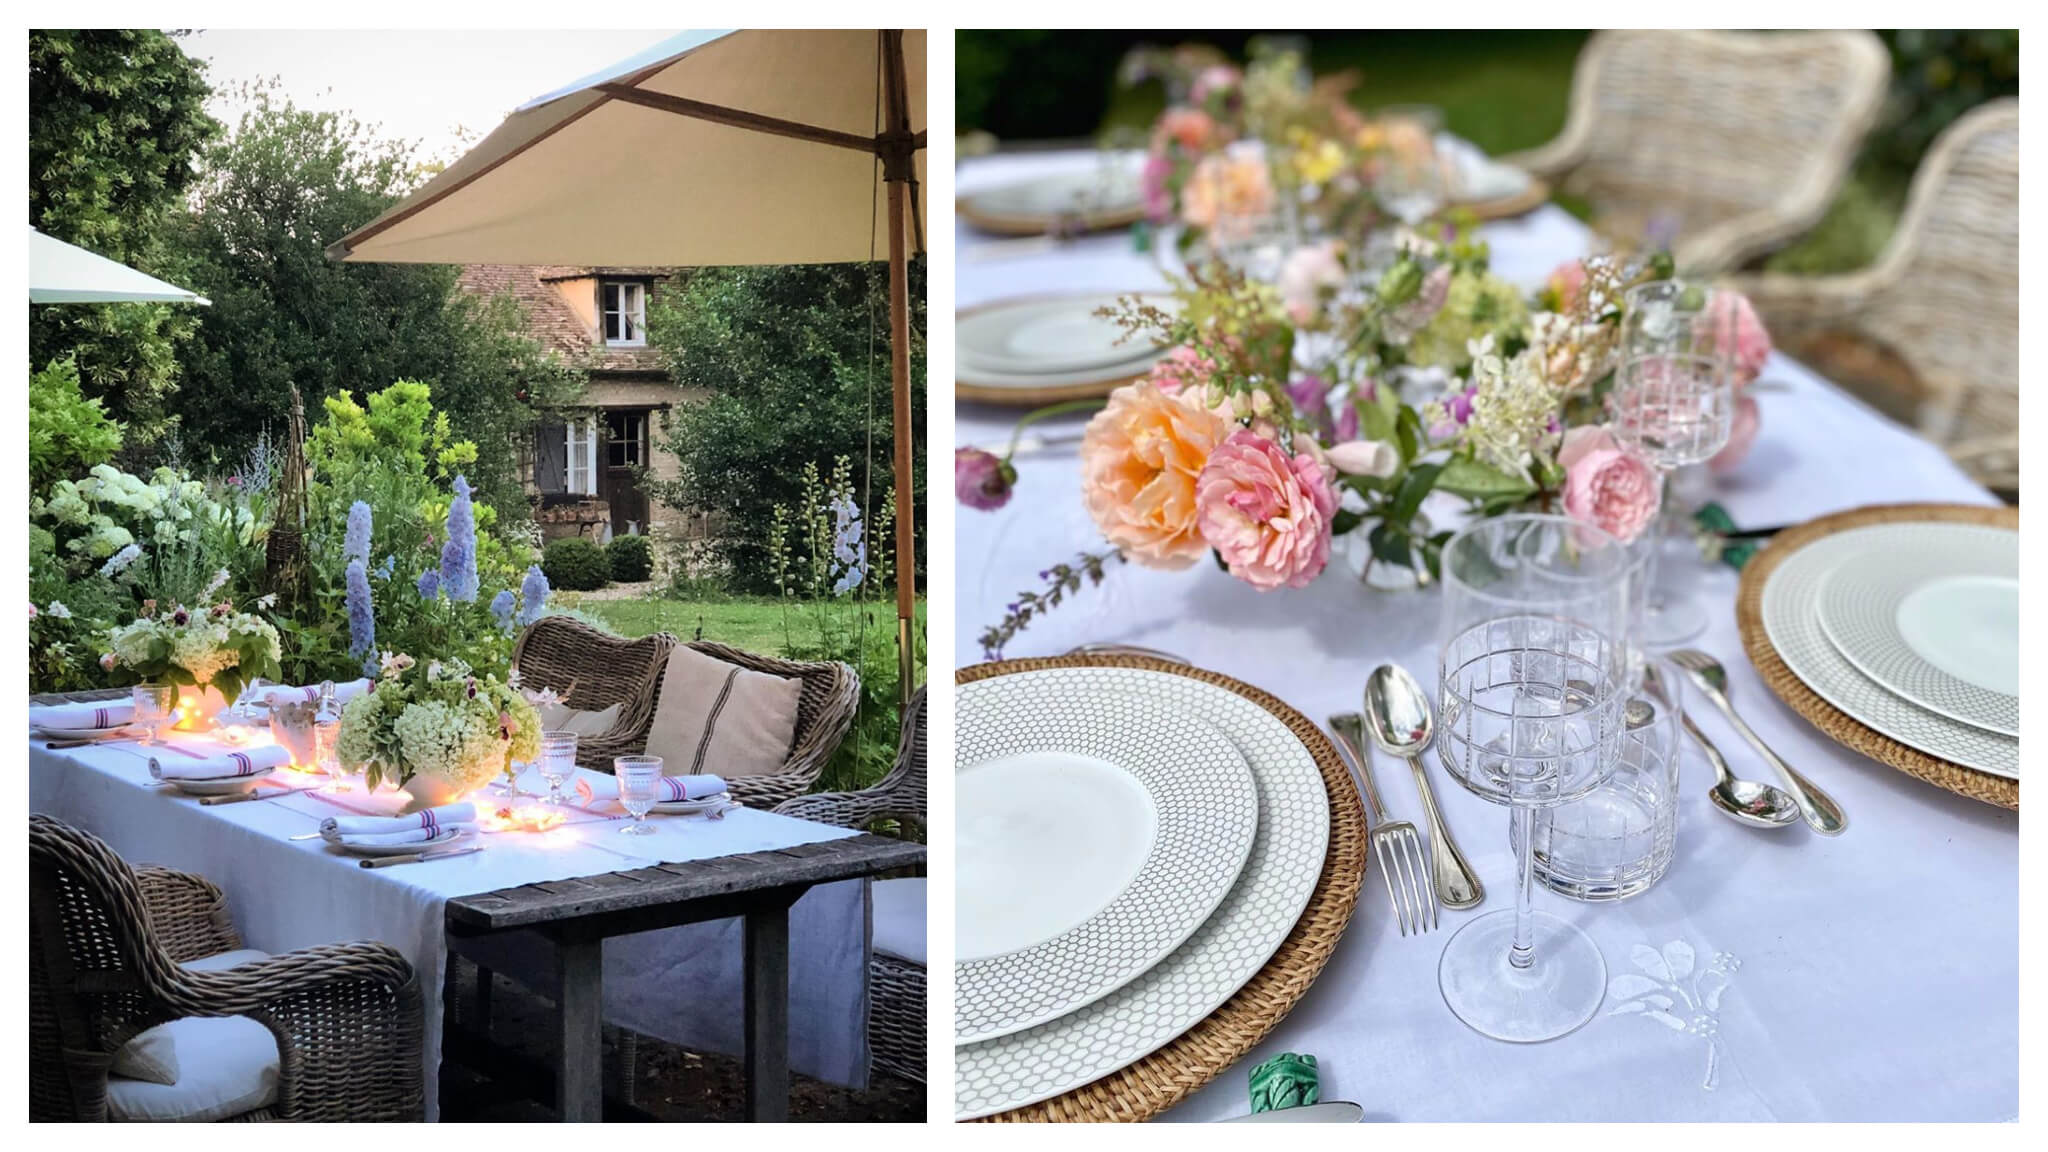 outdoor dining table and tablescape with flowers